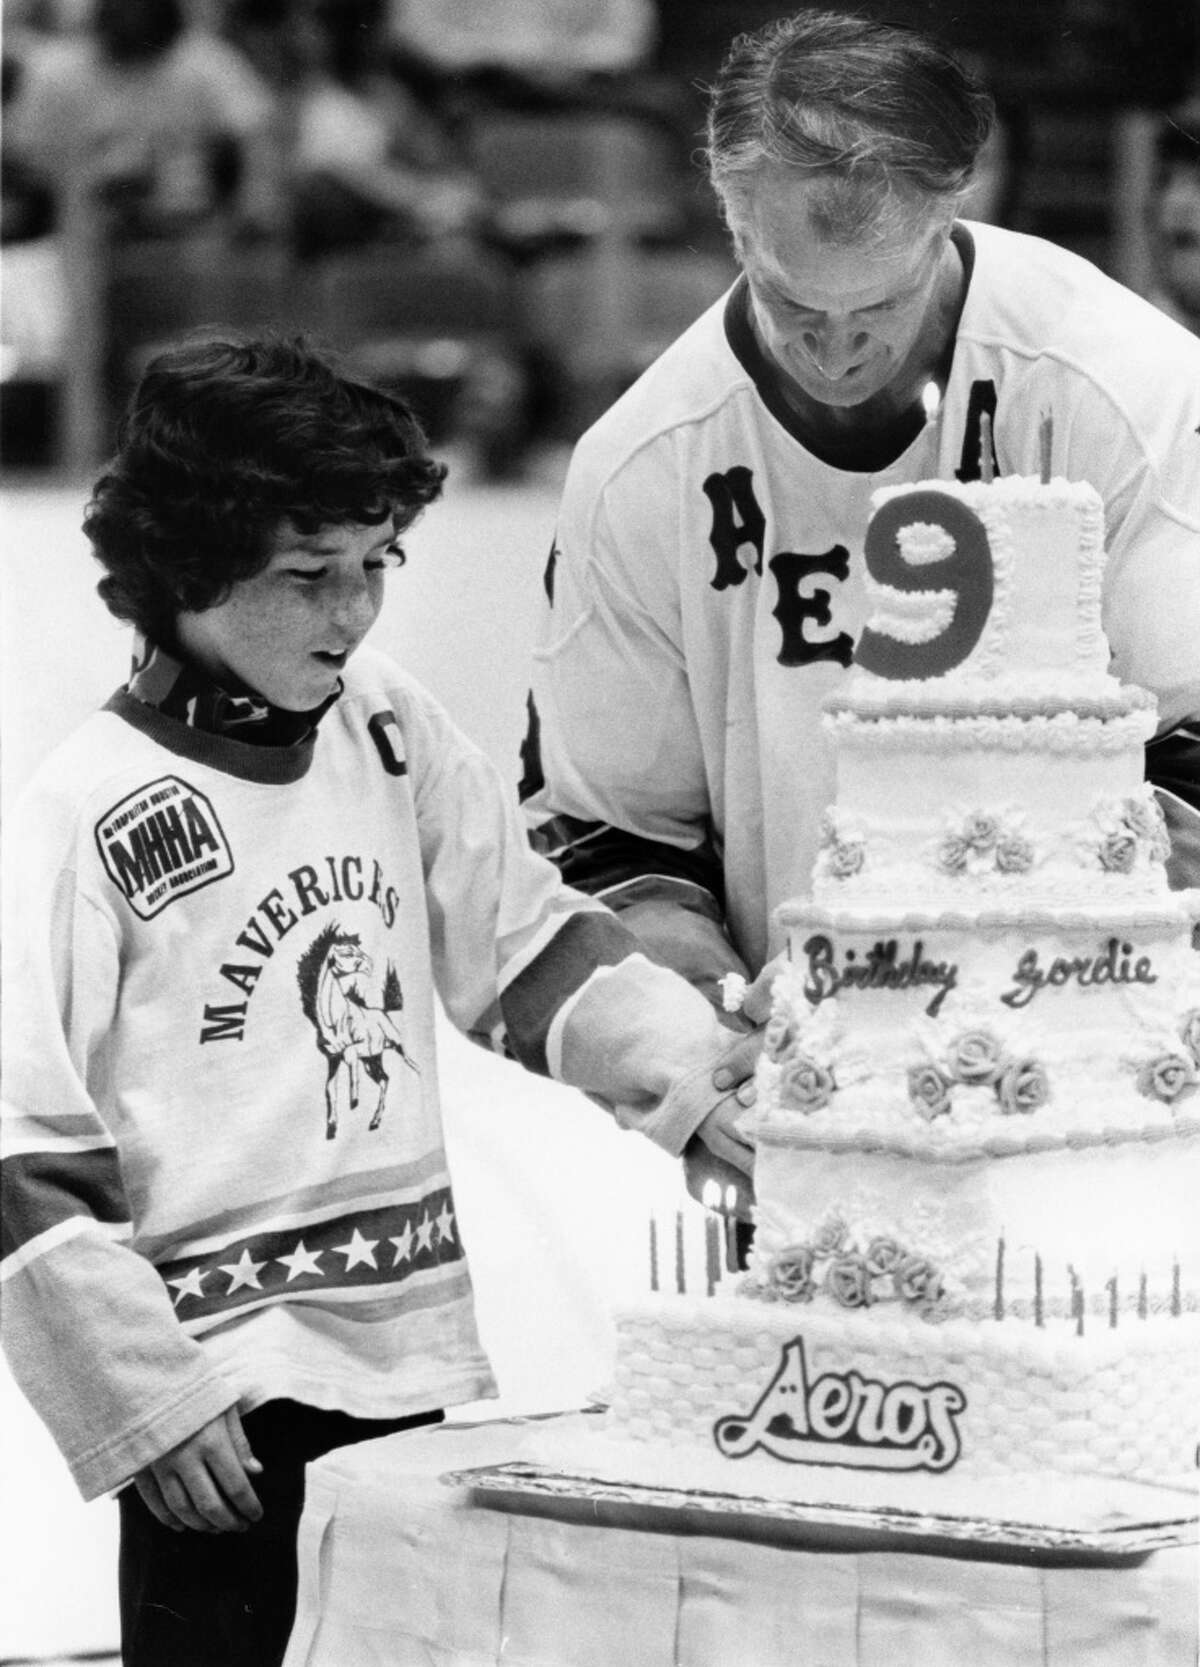 Kevin Dineen, left, son of Houston Aeros coach Bill Dineen, lends a helping hand to Gordie Howe during ceremonies between periods April 6, 1976, at The Summit. The crowd of 12,091 sang happy birthday to the 48-year-old star, who celebrated the event by scoring a goal and assisting on two others as the Aeros defeated Phoenix, 8-5, assuring the defending Avco World Trophy champions home-ice advantage in that year'sWorld Hockey Association playoffs. Kevin Dineen later played 19 seasons in the NHL and won the Stanley Cup in 2015 as an assistant coach for the Chicago Blackhawks. Click through the gallery to see more photos from Gordie Howe's Houston years.